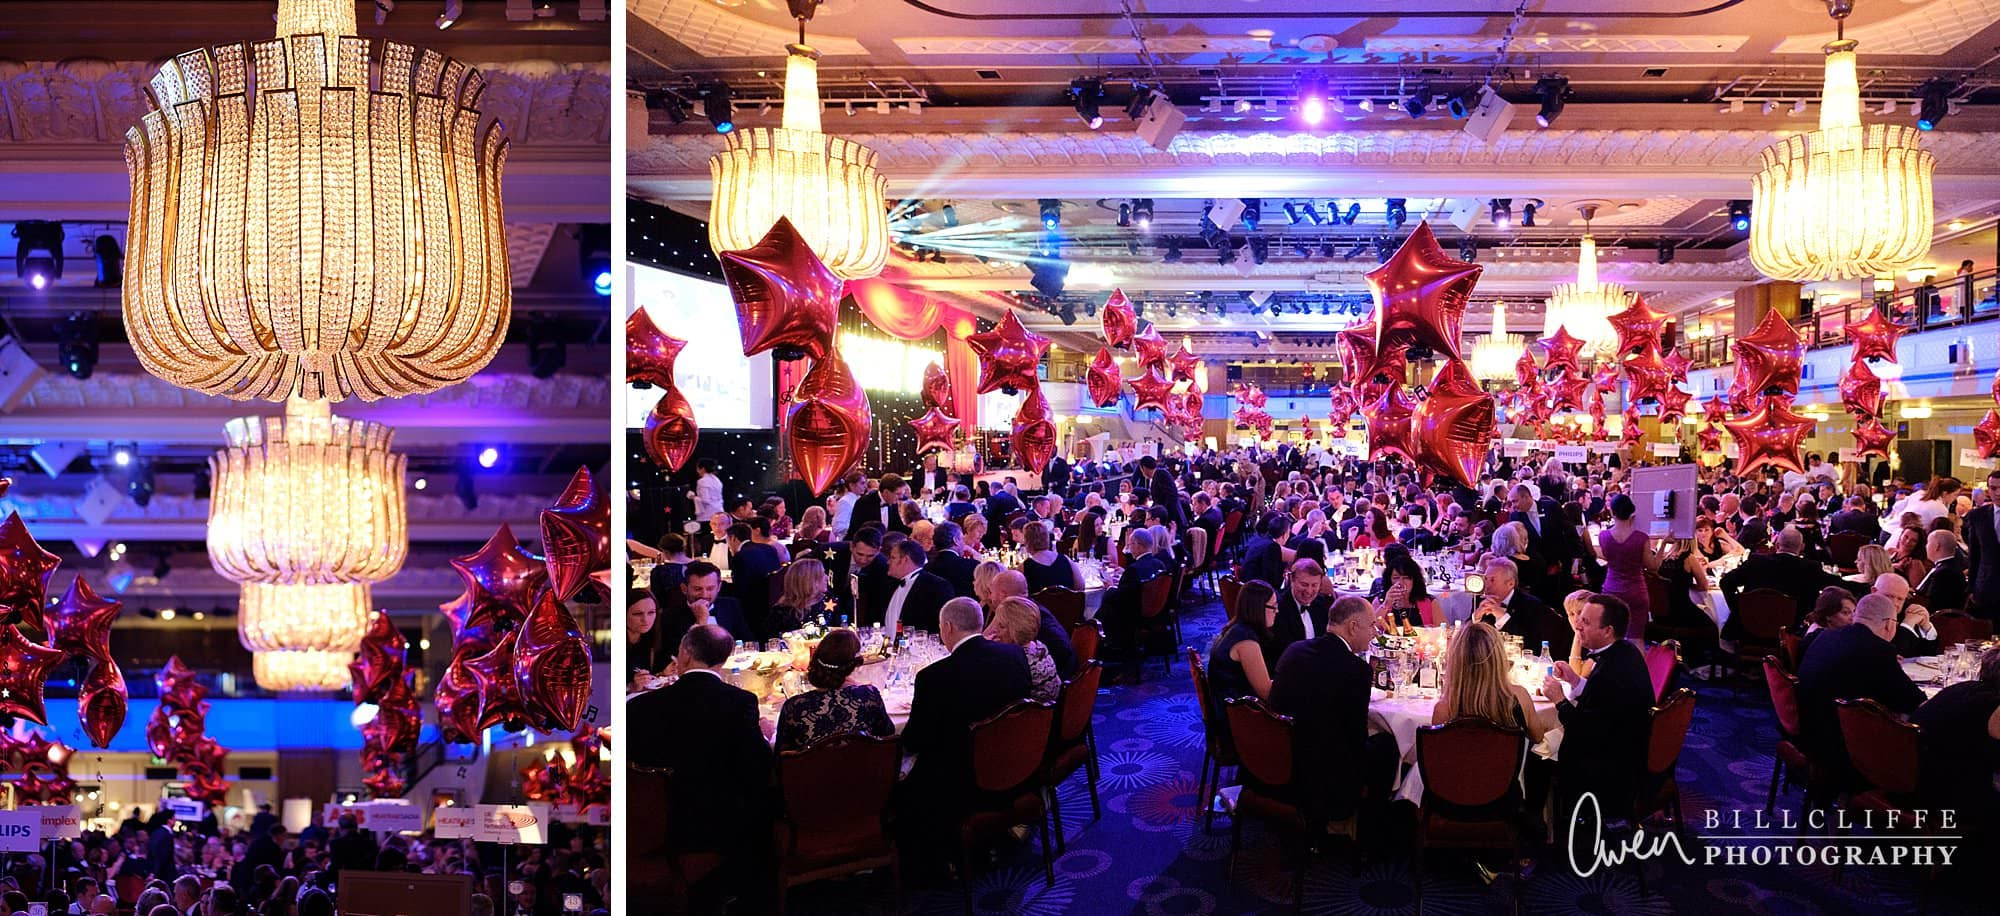 london event photographer park lane pb 017 - A Luxury Ball at Grosvenor House Park Lane